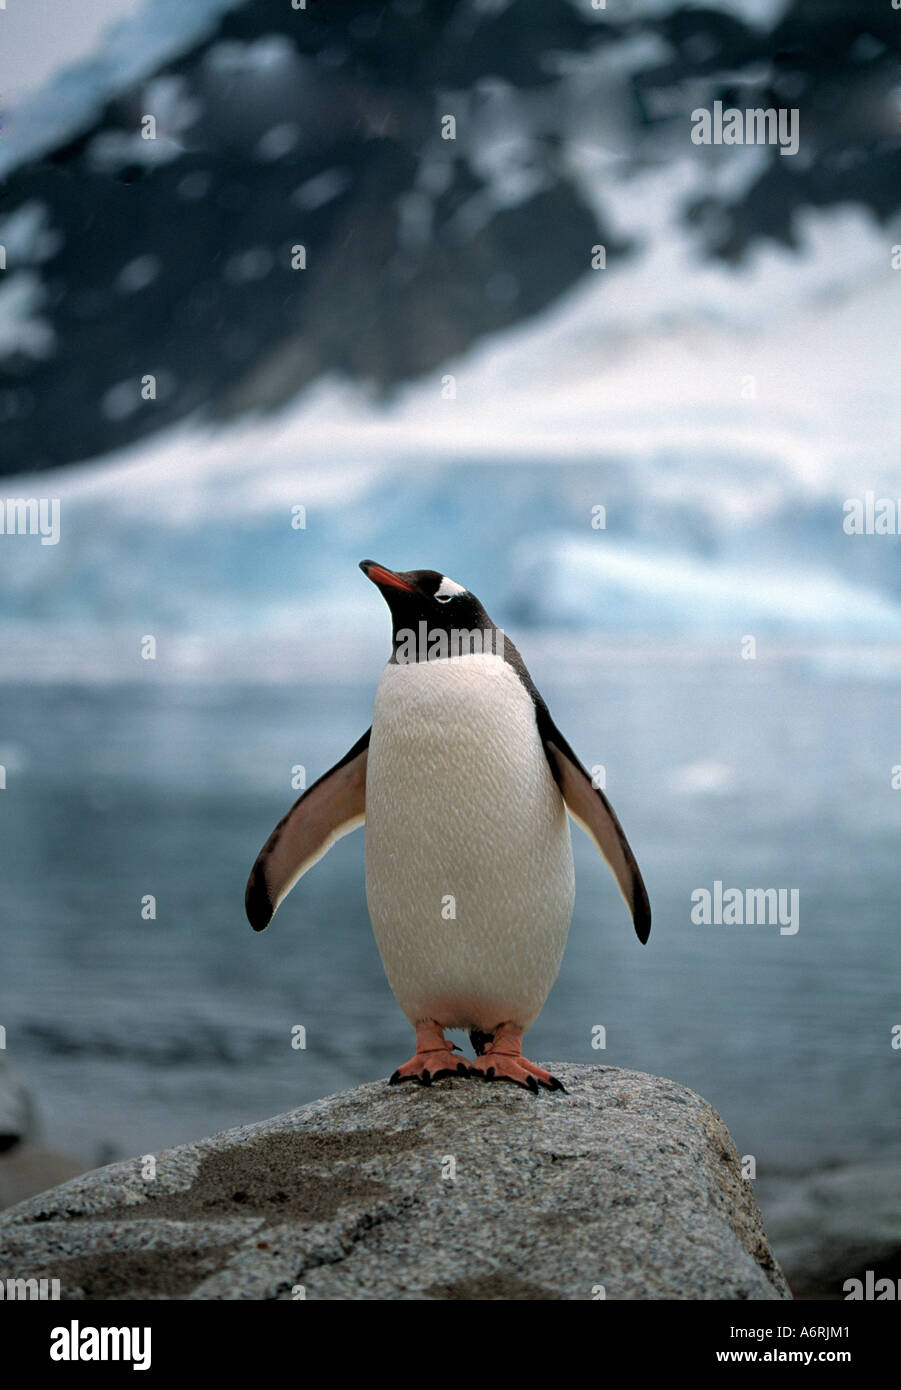 antartic, antartica, ice continent, frozen continent, cold continent, penguin  standing on rock, polar - Stock Image